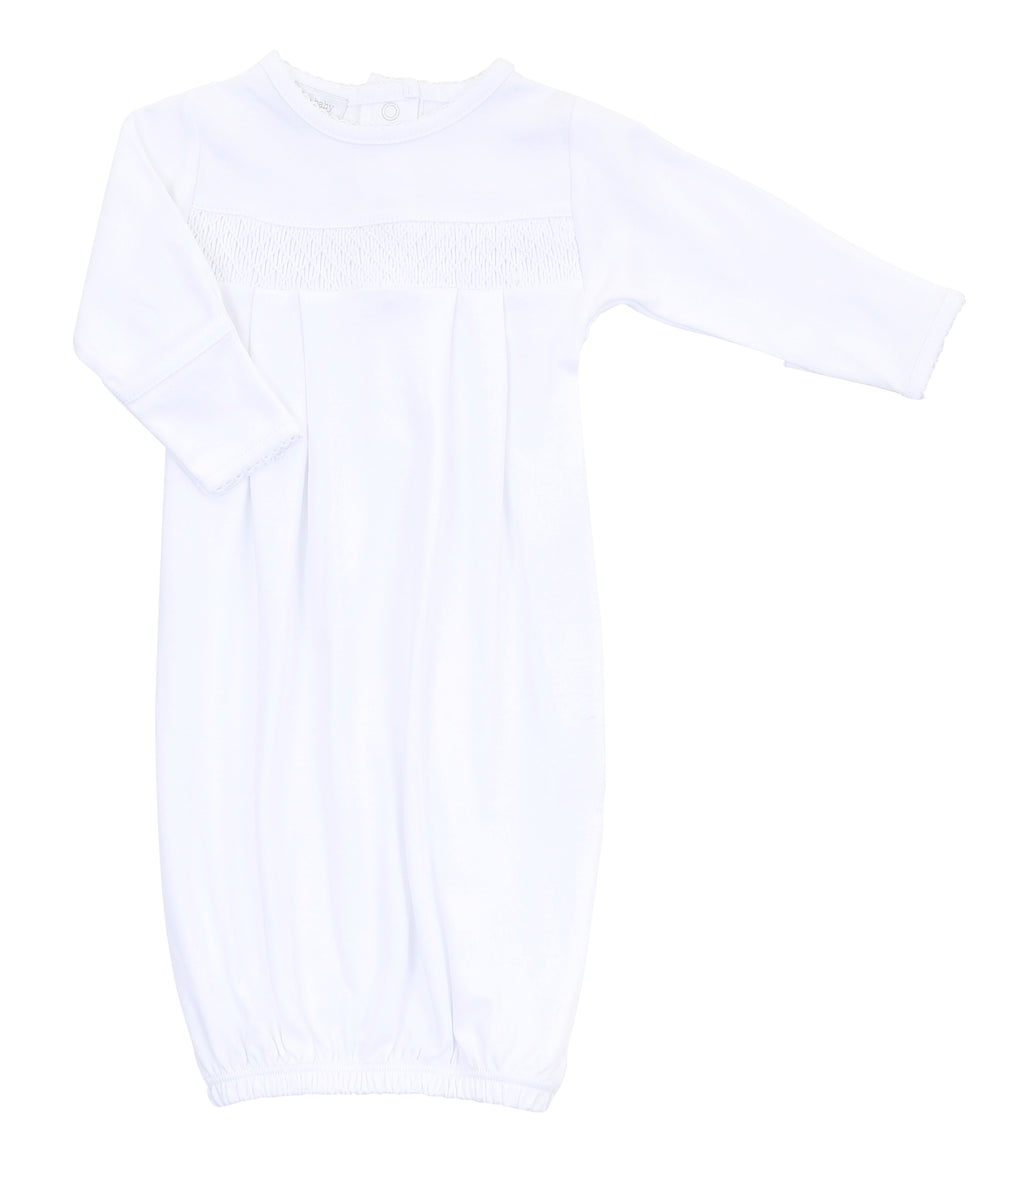 Magnolia Baby Essentials White Smocked Gown - Personalization Available